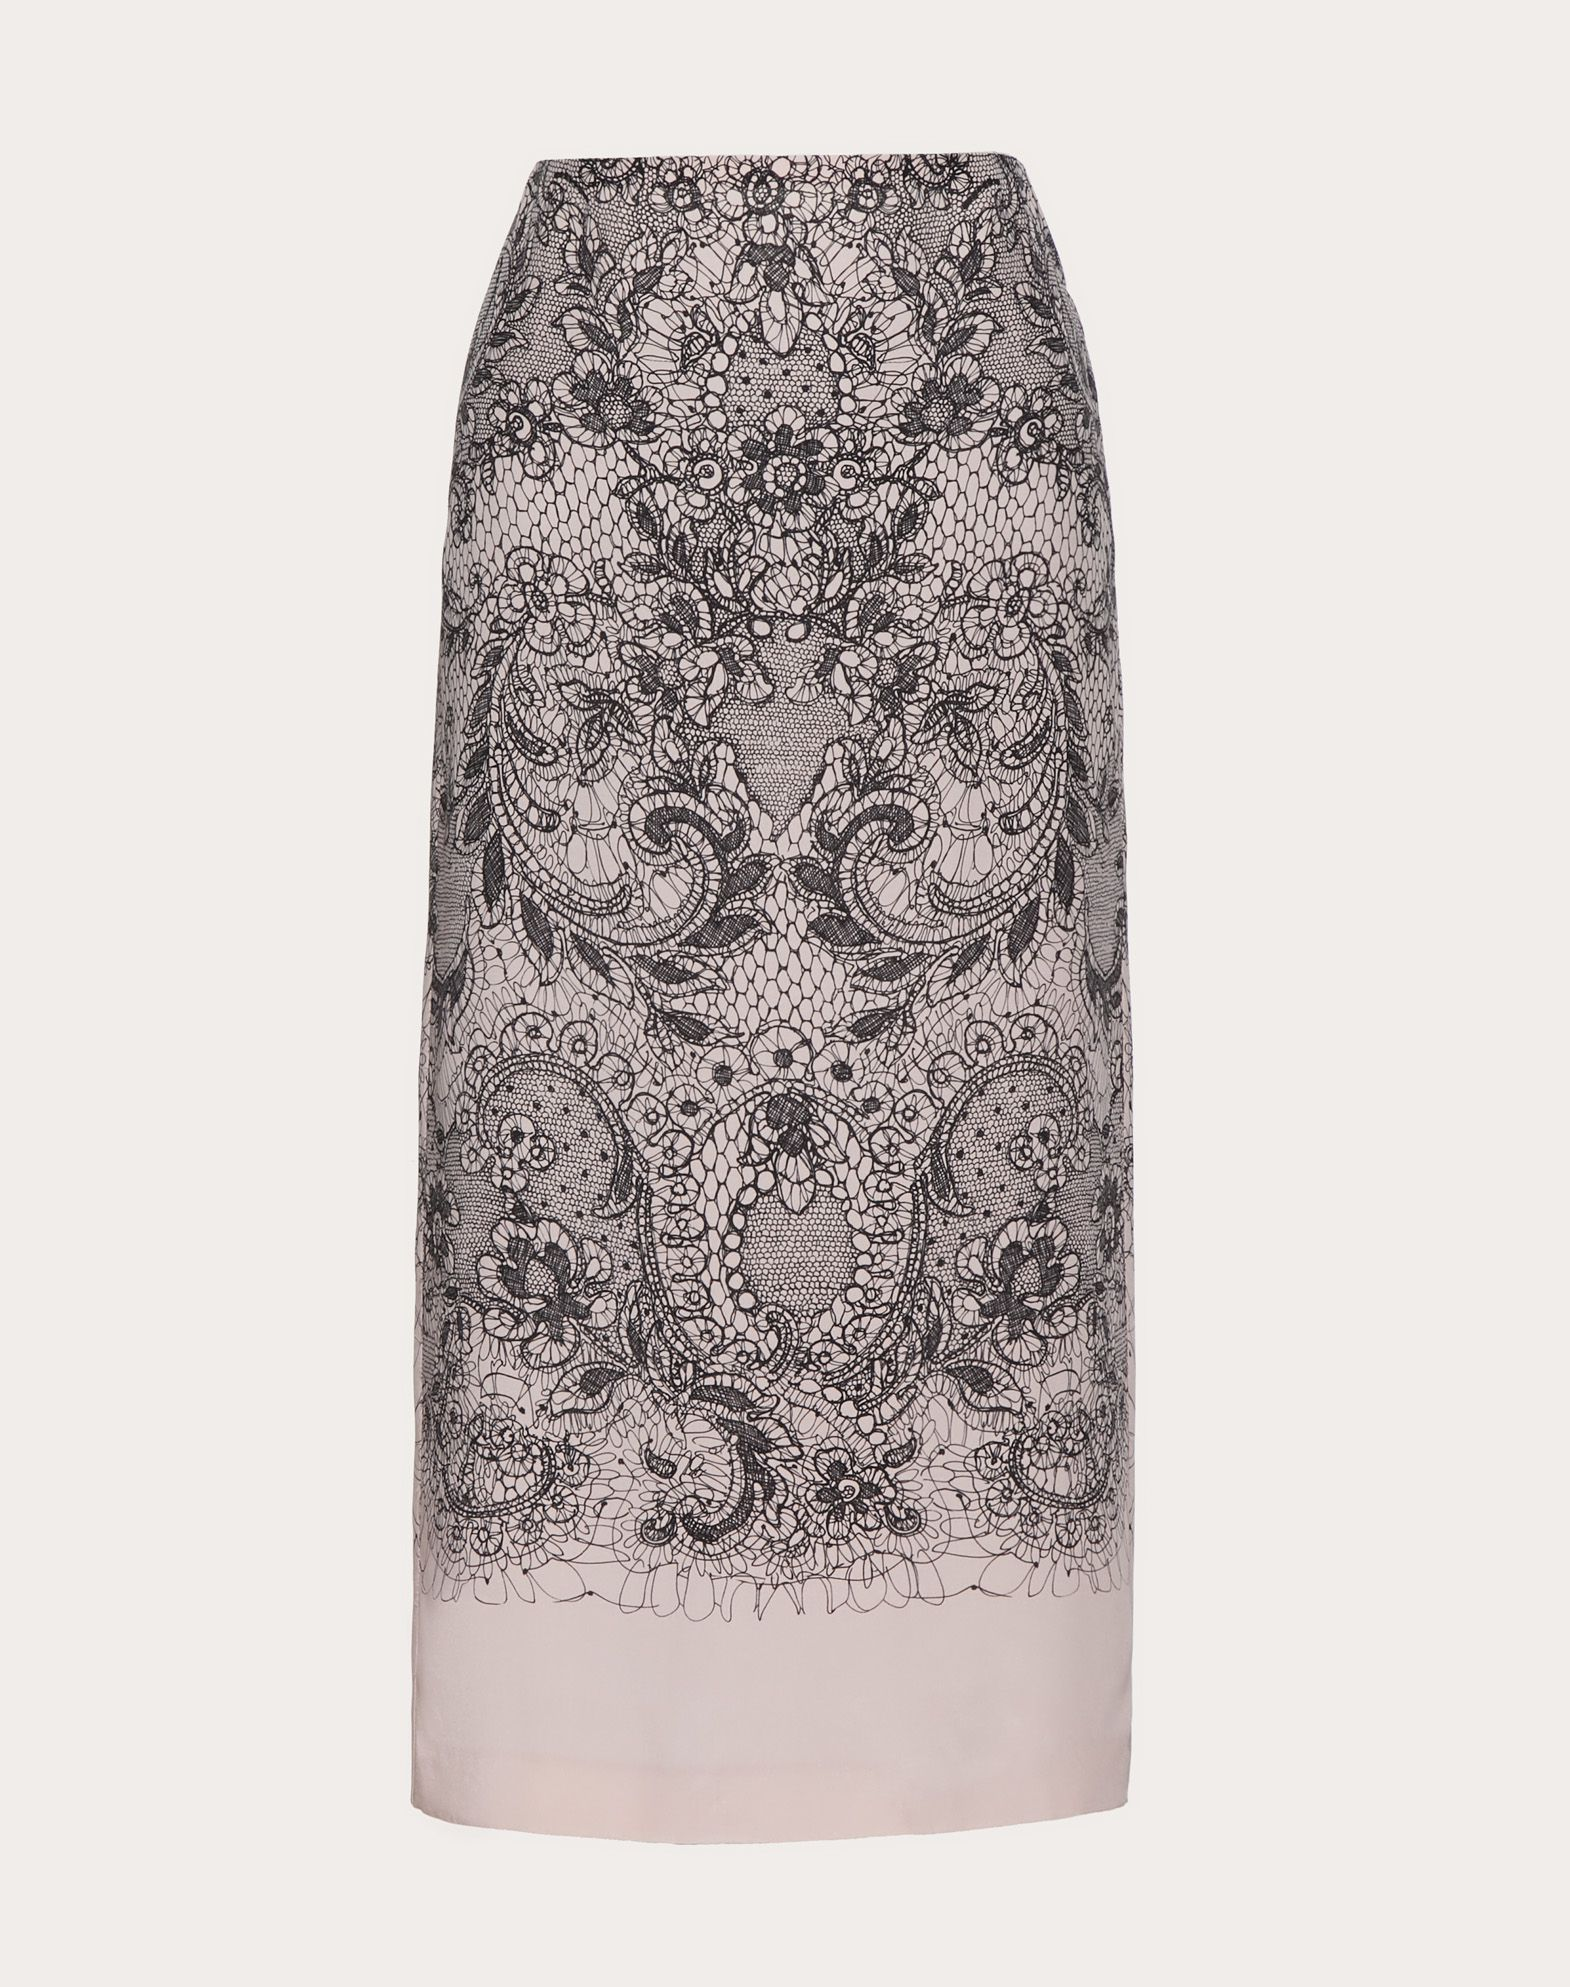 GONNA IN CREPE DE CHINE LACE PRINT